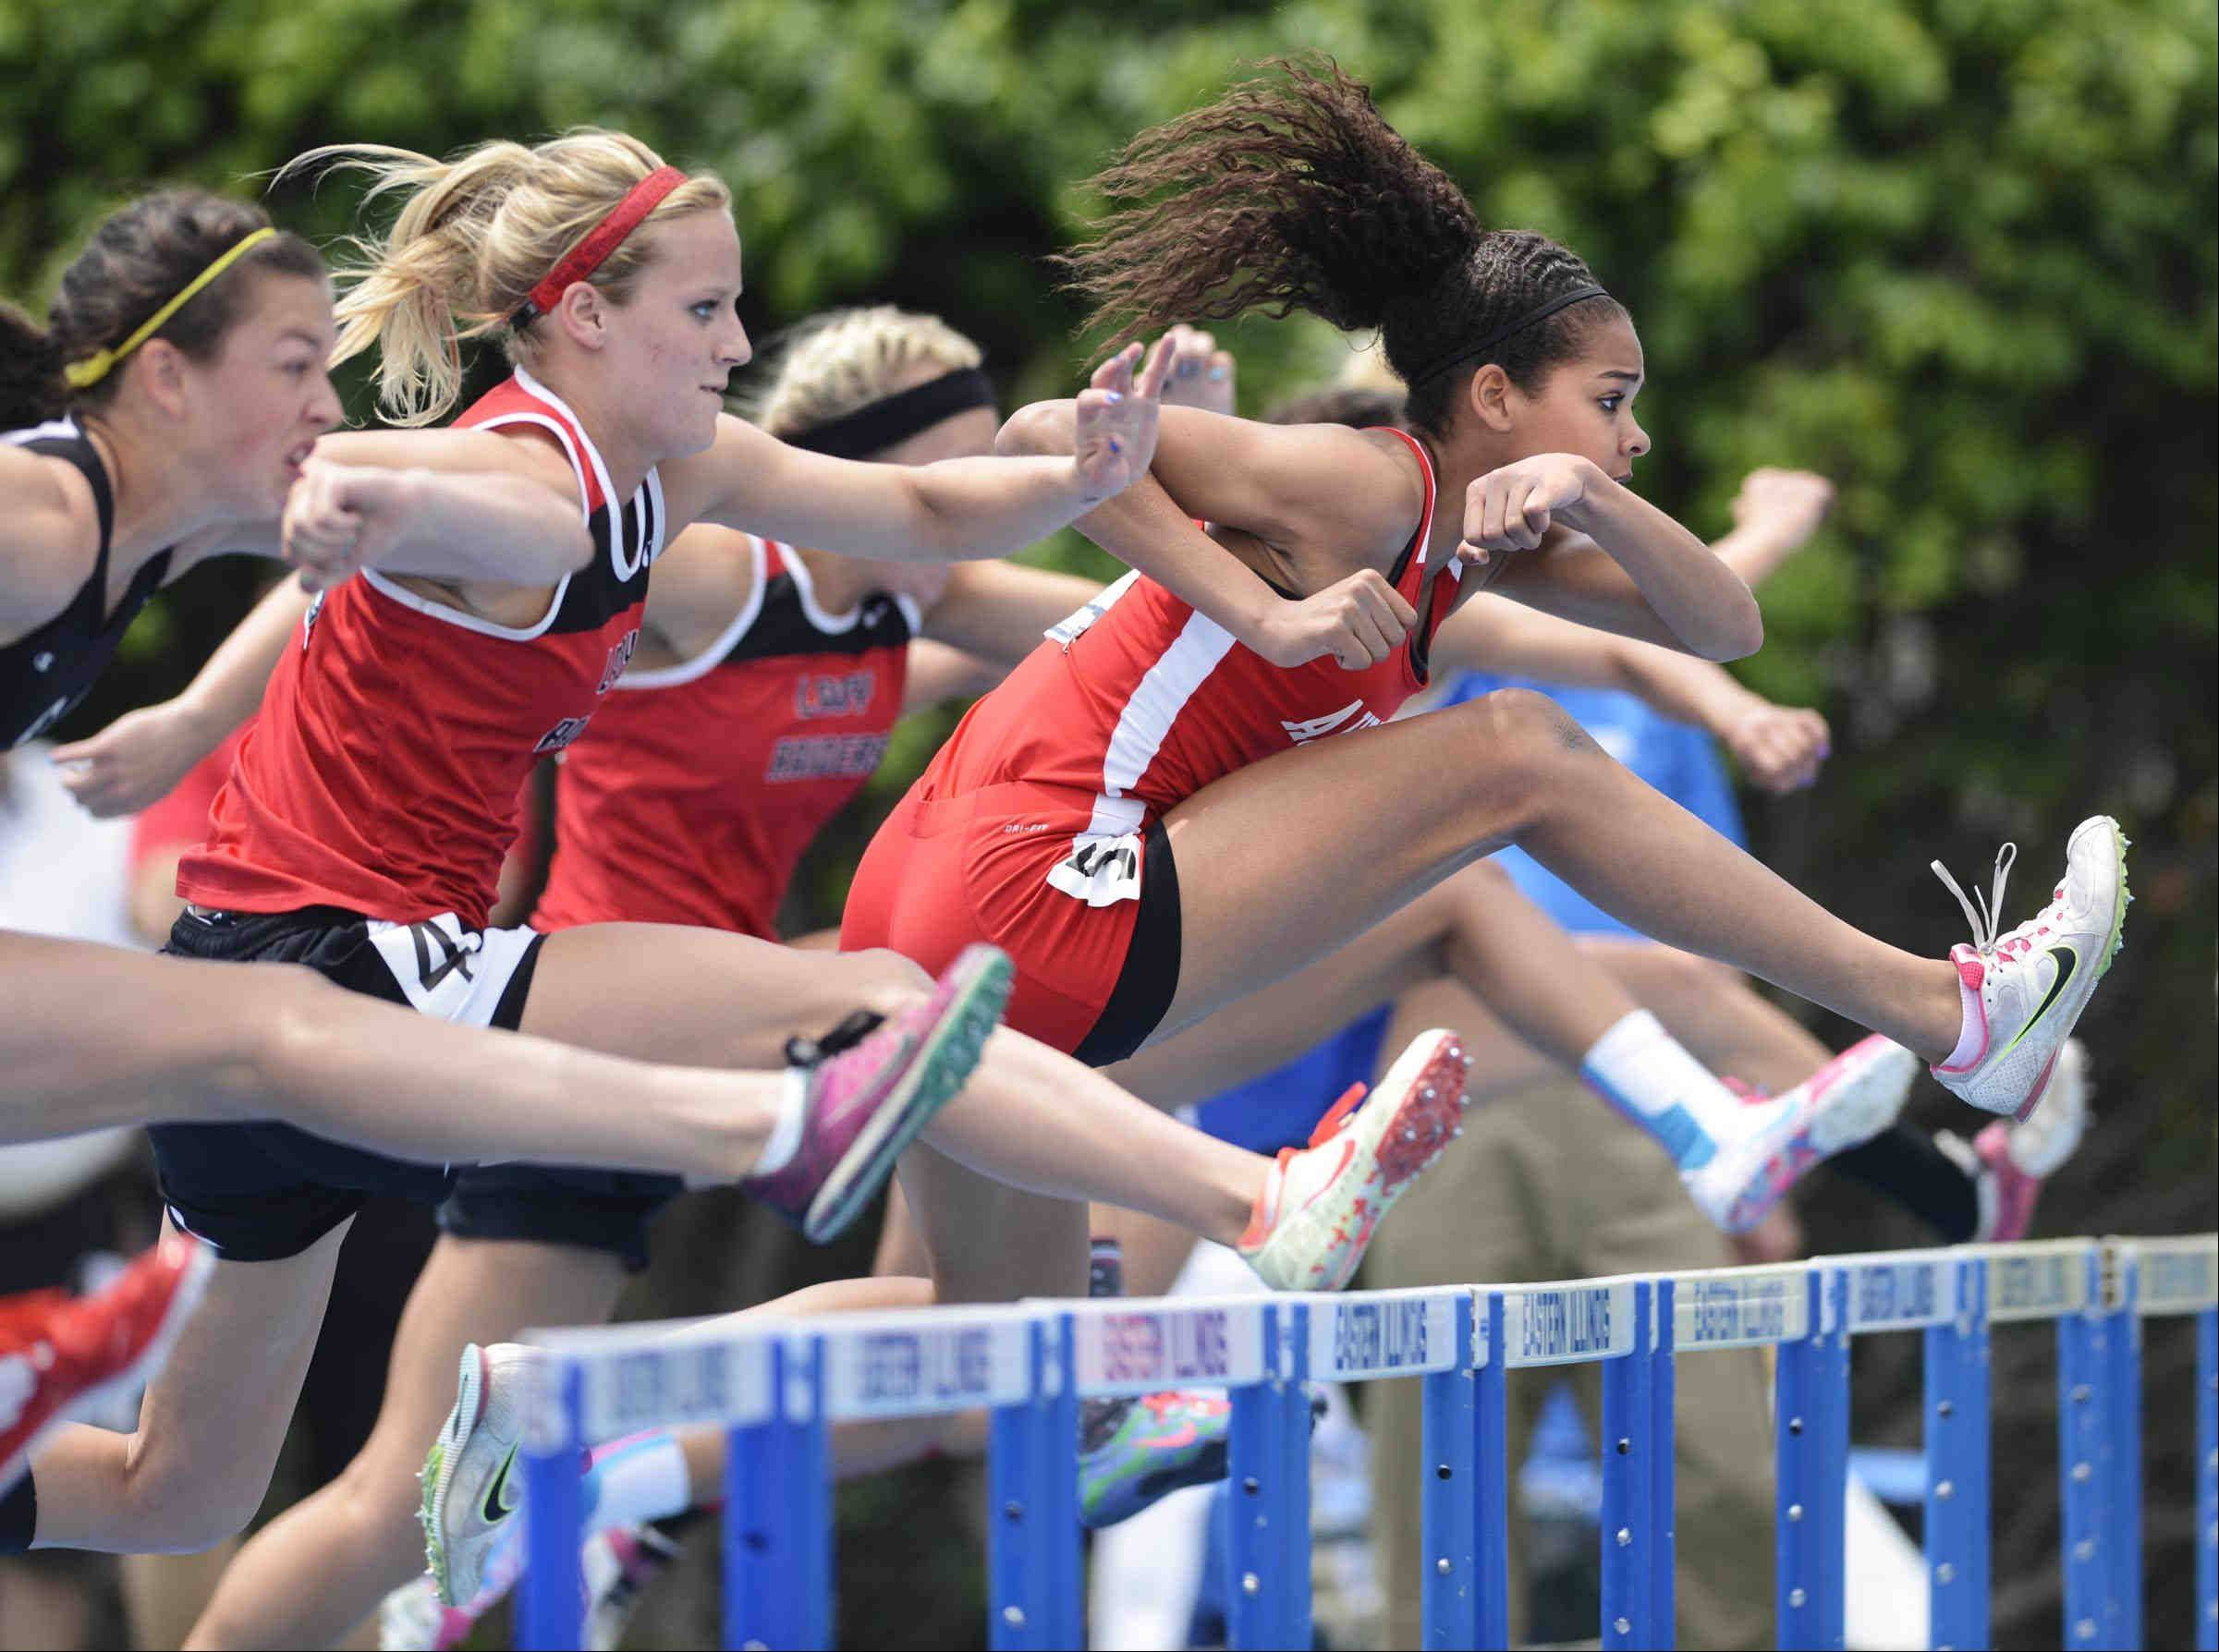 Aurora Christian's Peyton Wade leads the field over the first hurdle on her way to a state championship in the 100 meter high hurdles Saturday at the Class 1A girls state track and field finals at O'Brien Stadium at Eastern Illinois University in Charleston.